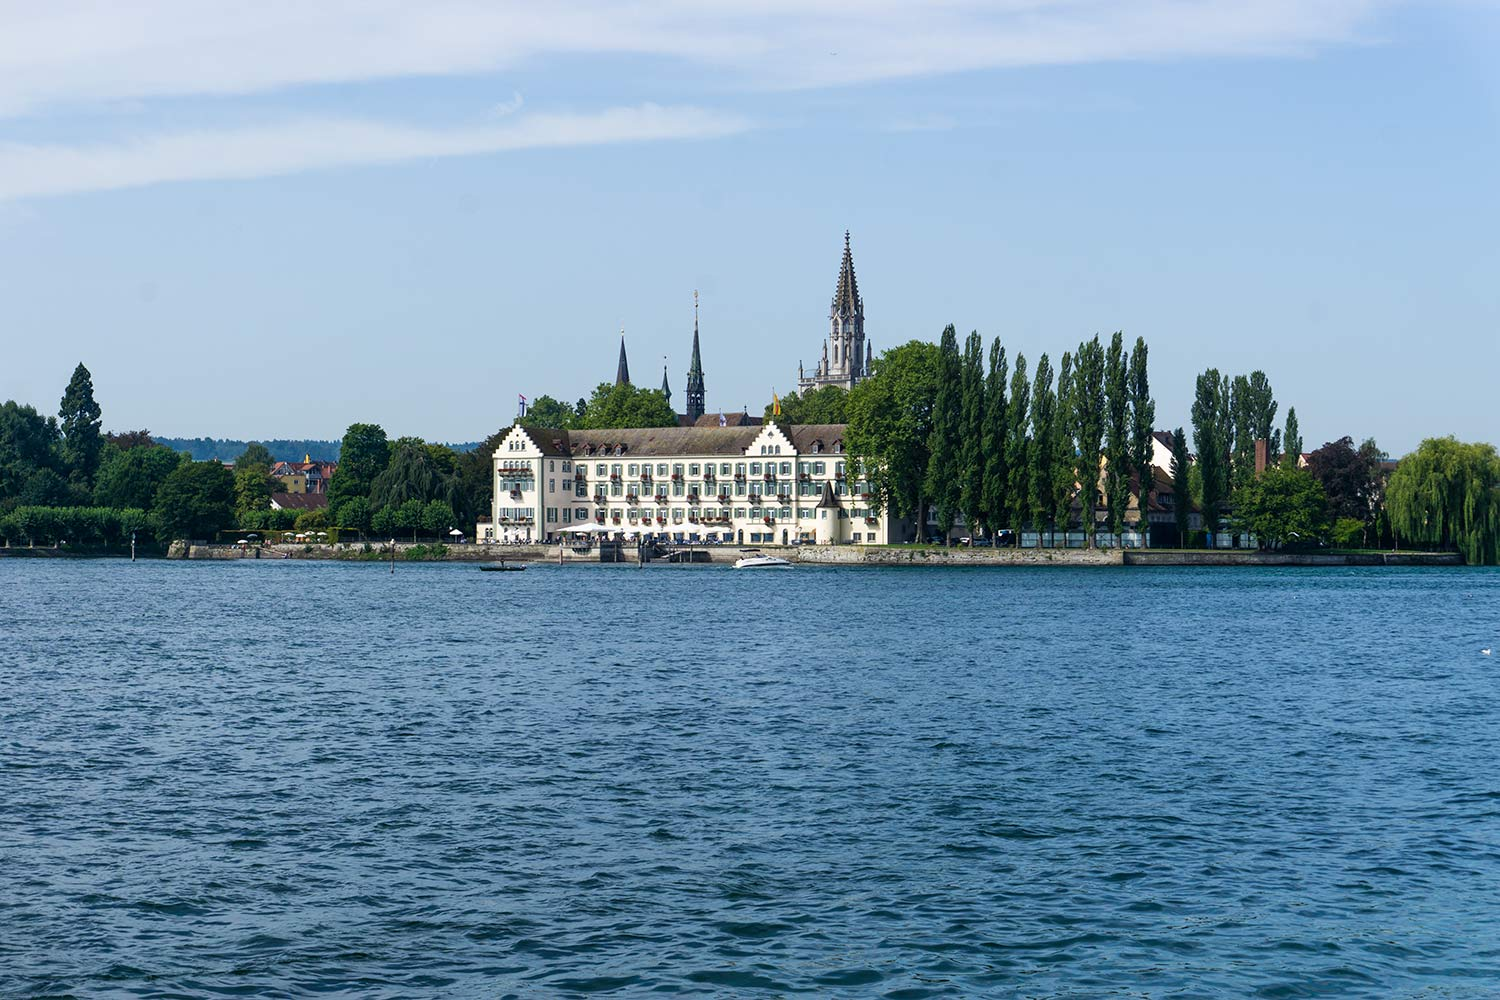 Lake Konstanz with a view of a medieval building and trees in the distance.